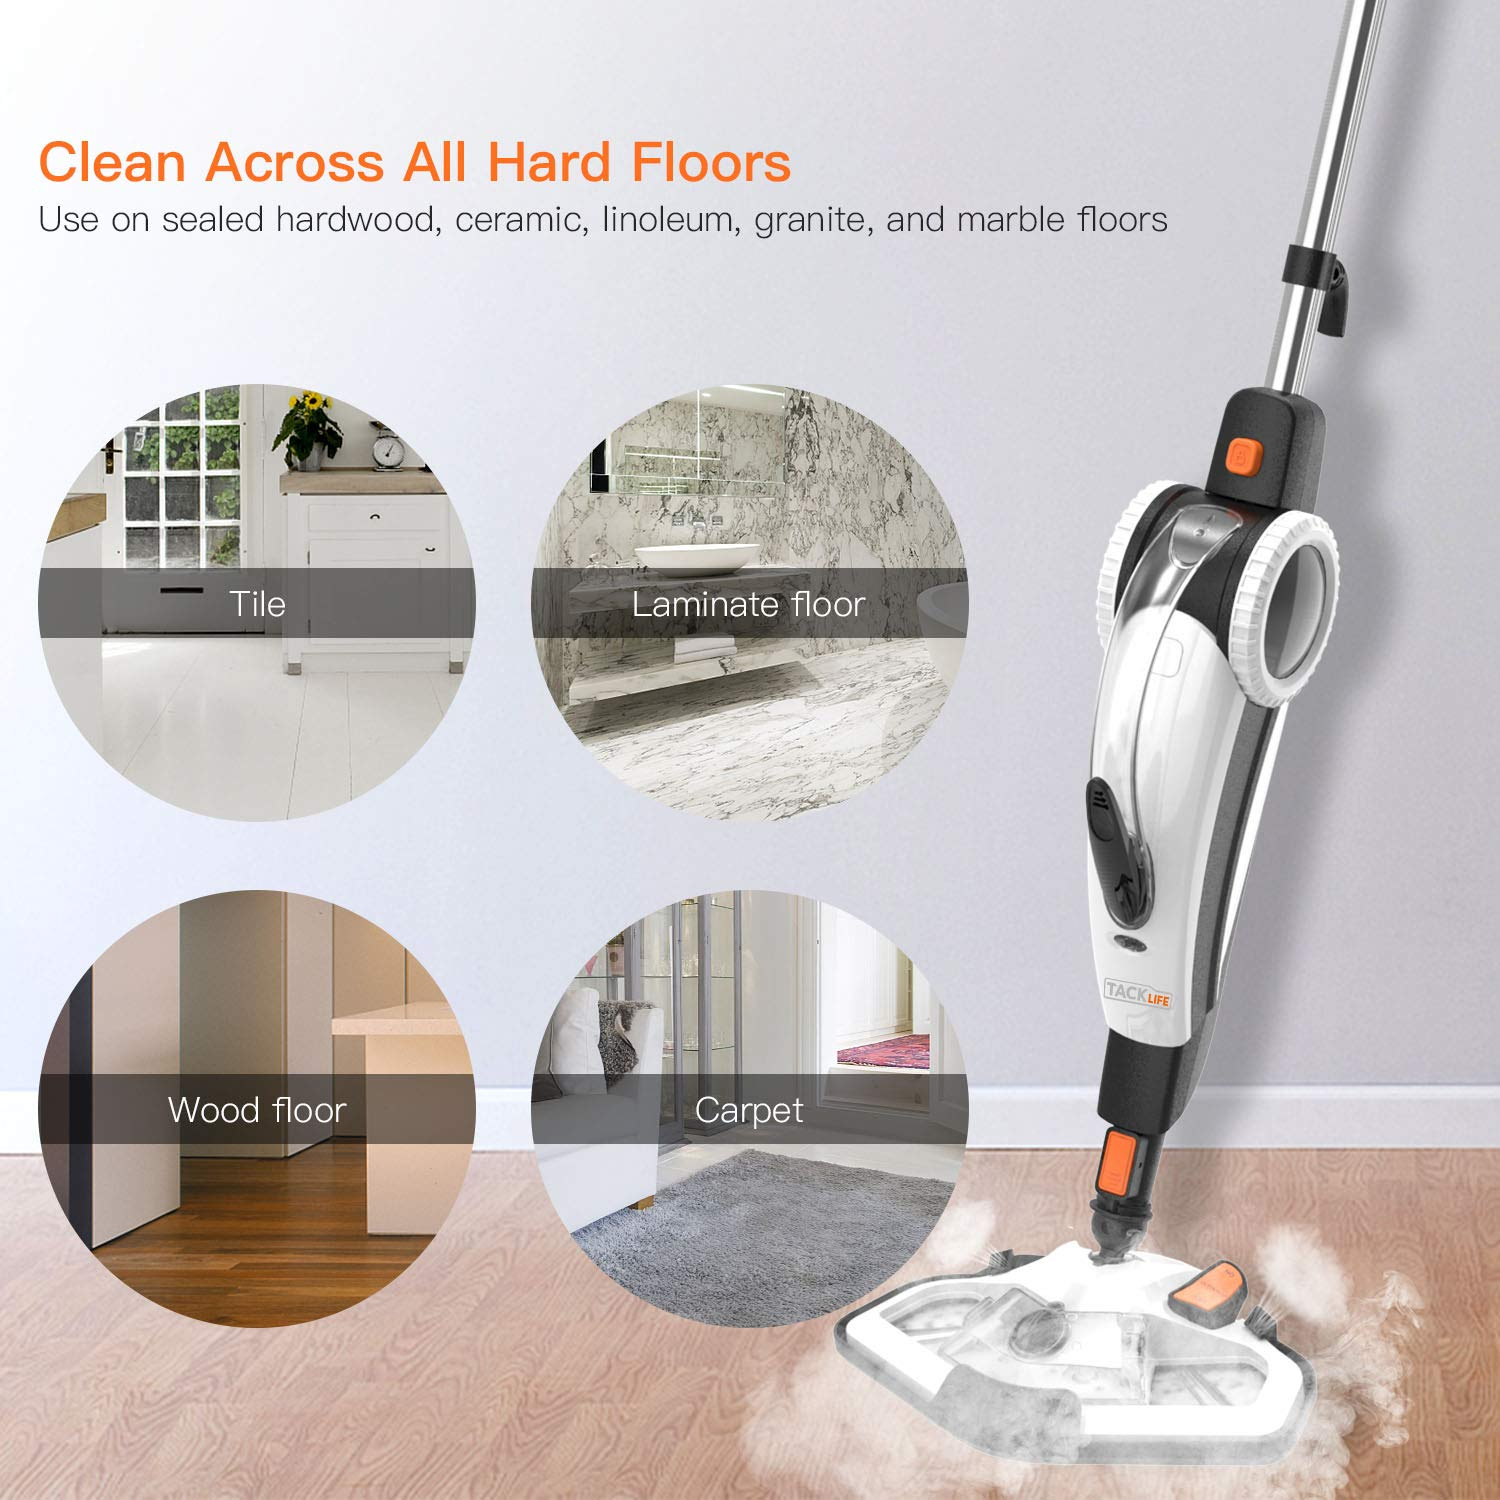 TACKLIFE Steam Mop, Steam Cleaner Multifunction Floor Steamer and Hand-held Steam Floor Mop 2 in 1, 1400W Portable Electric Scrubber Heating in 5s, with 11 Accessories by TACKLIFE (Image #6)